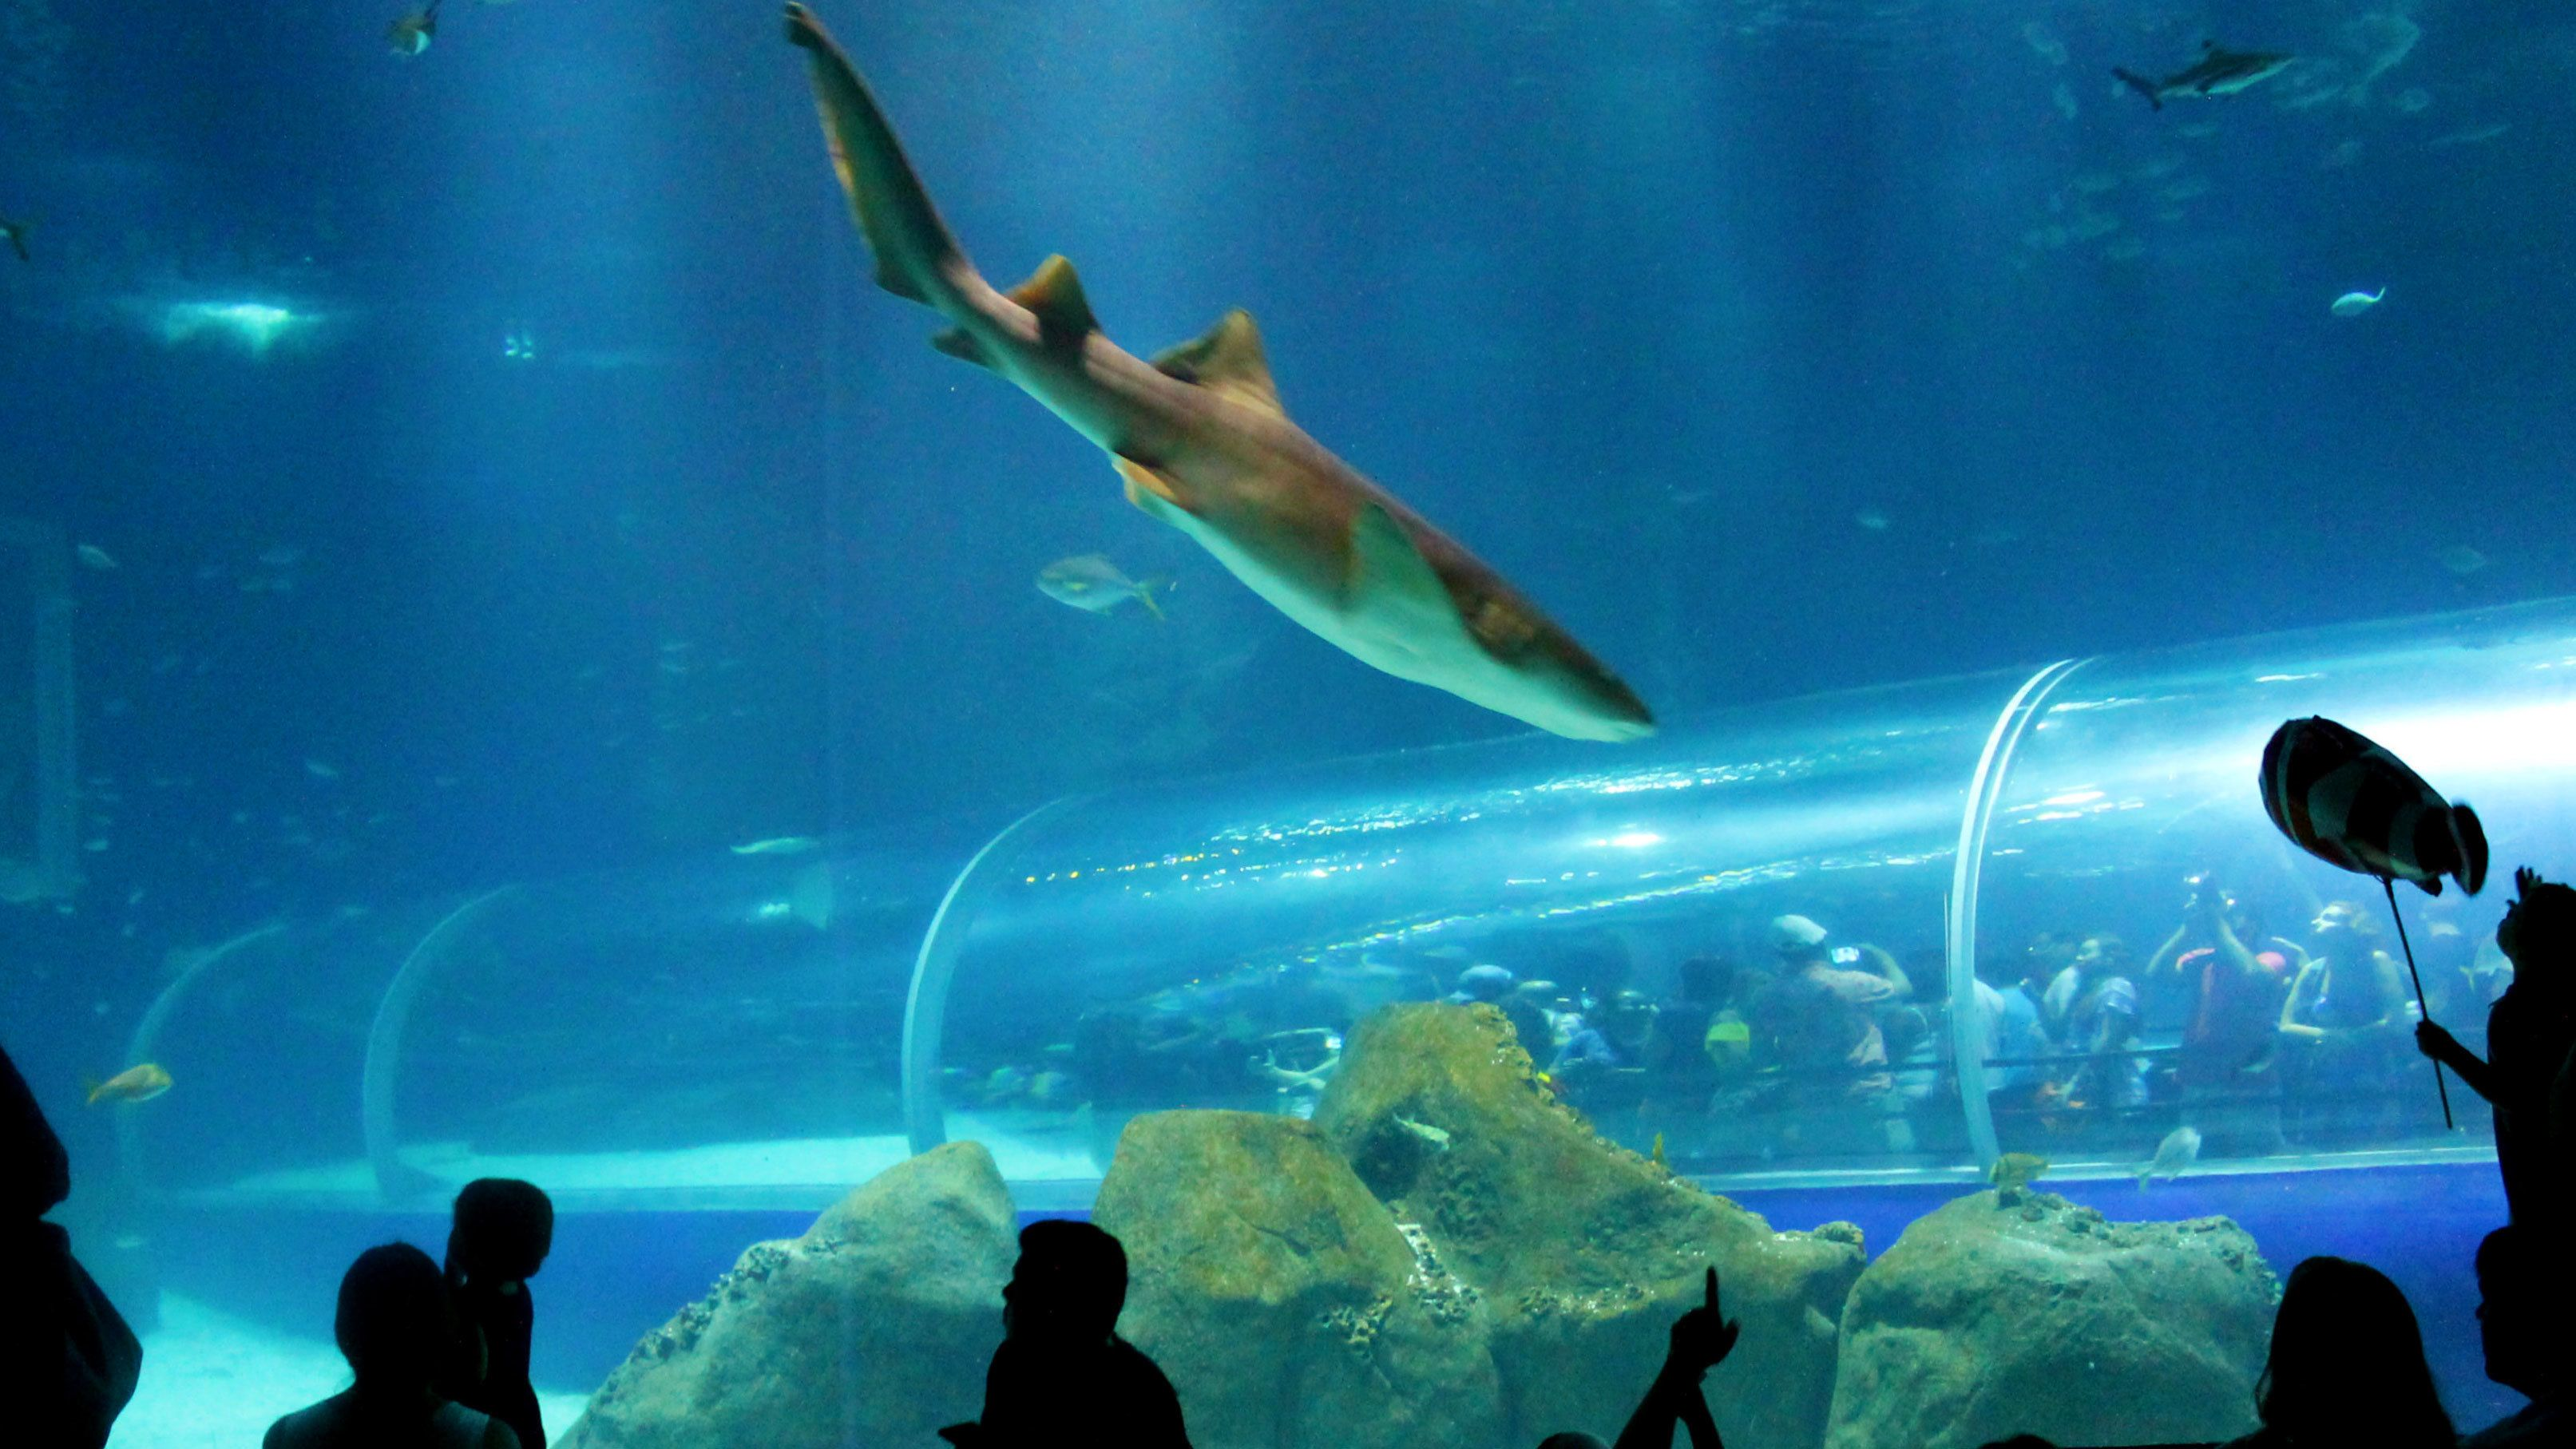 Shark swims by onlookers at a Aquarium